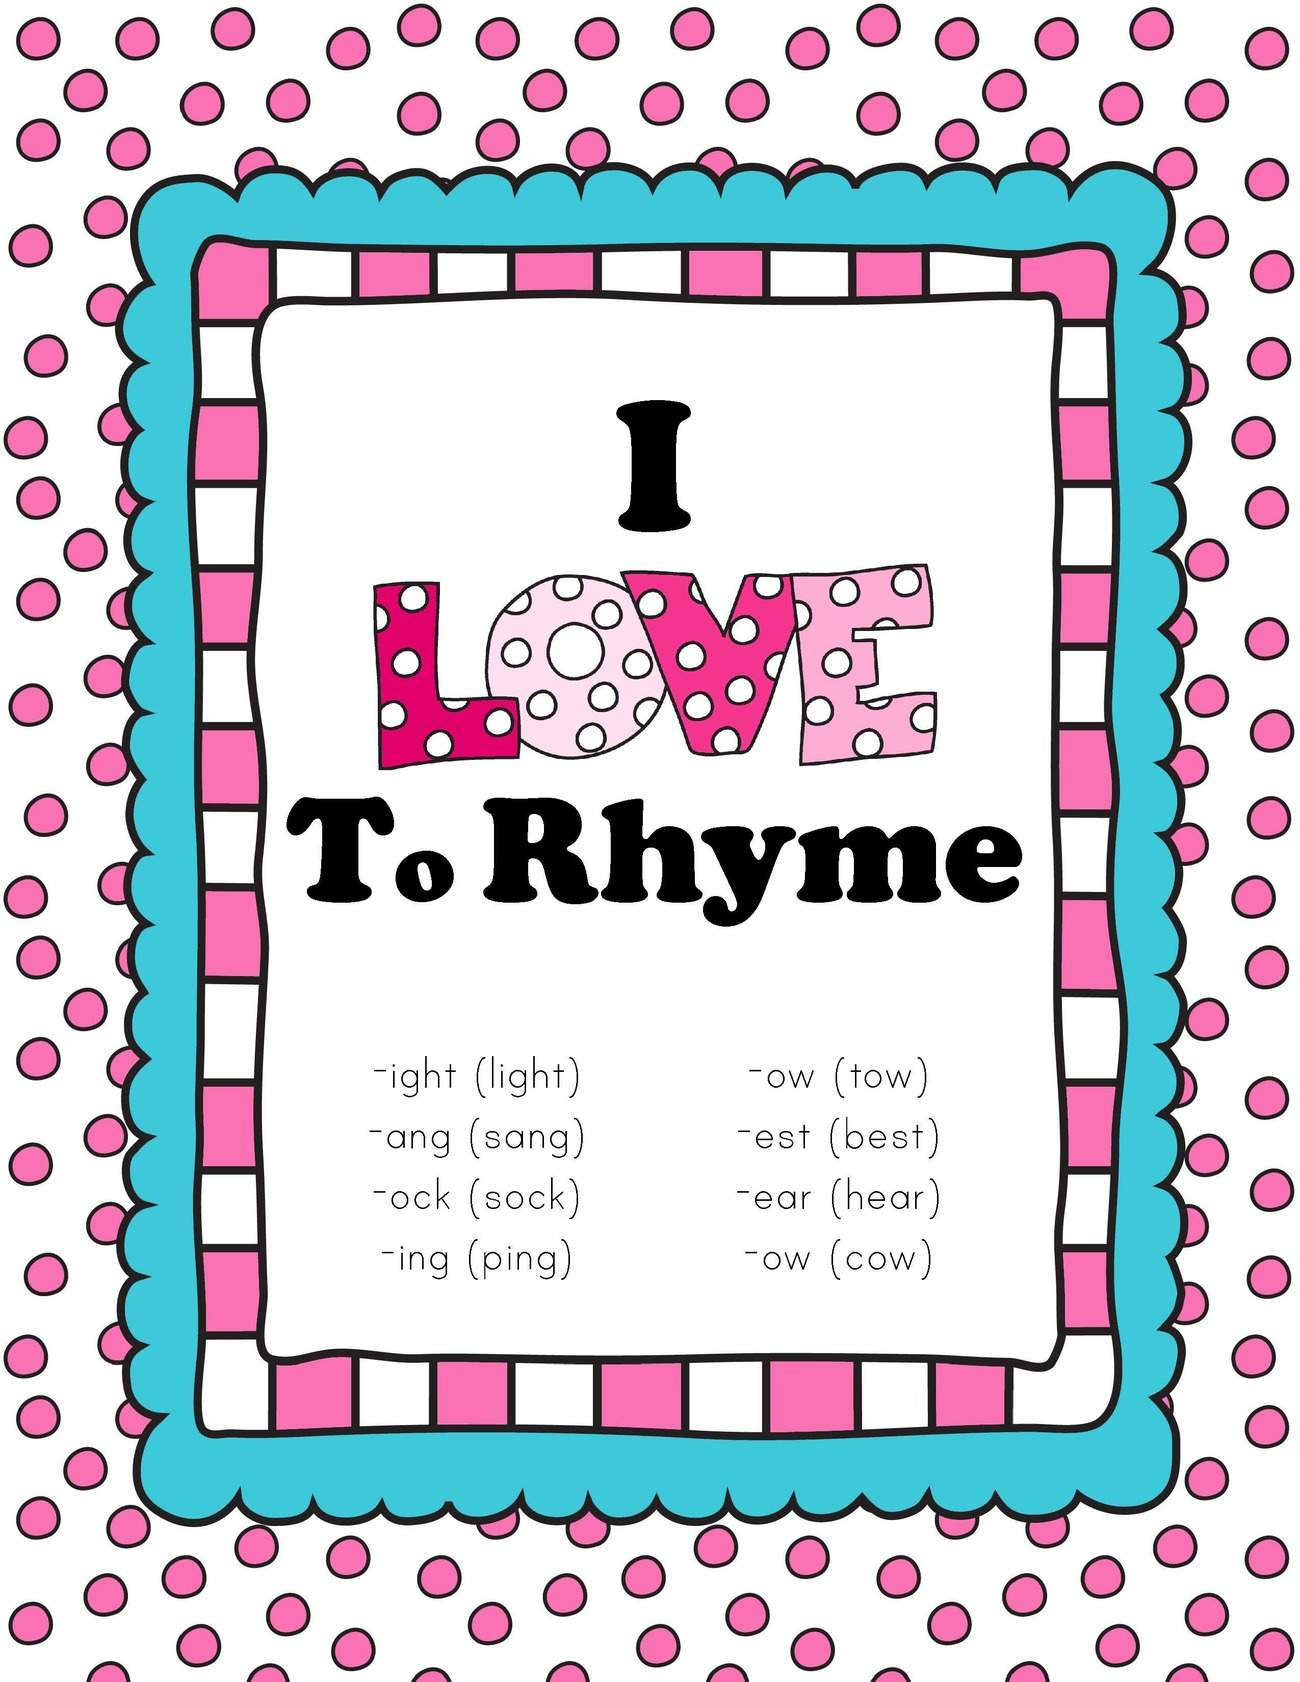 Worksheet Ryhmeing valentines day themed rhyming pack only passionate curiosity download the love to rhyme read and sort in our shop